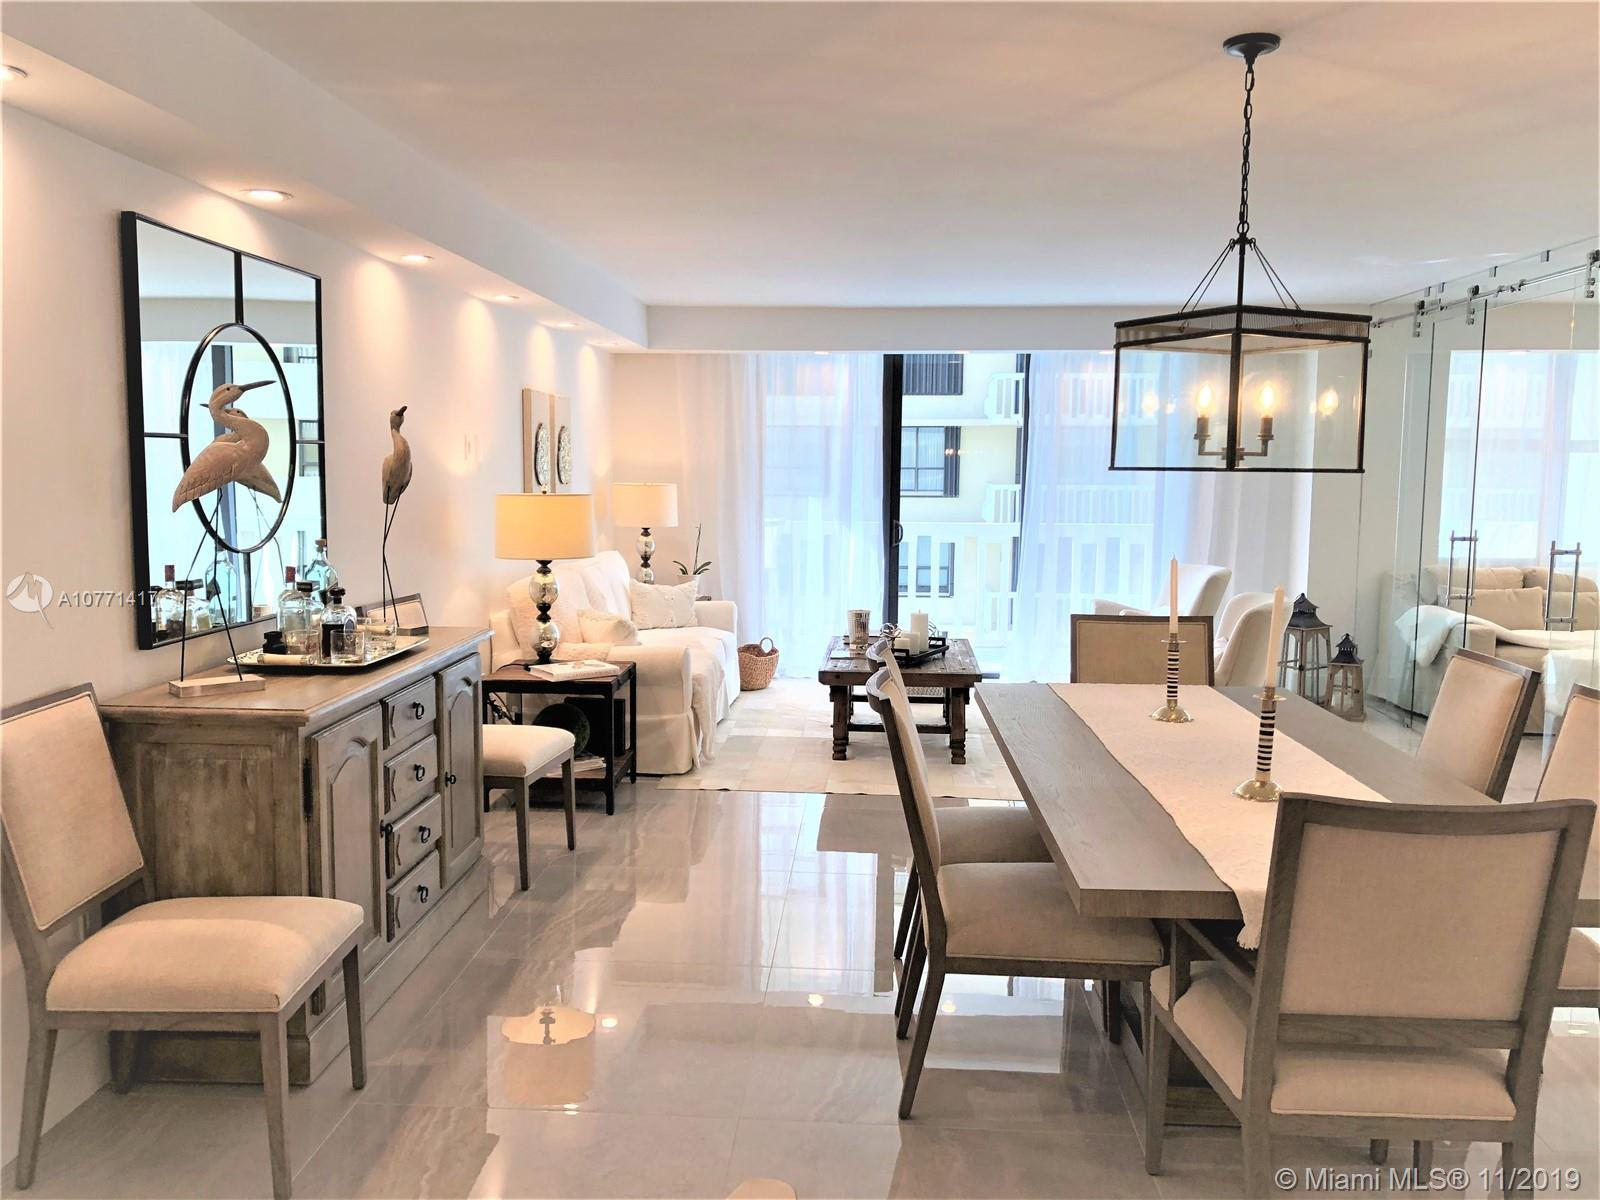 "Prestigious condo ""Balmoral"" in exclusive Bal Harbour across world renowned Bal Harbour Shops and Ha"